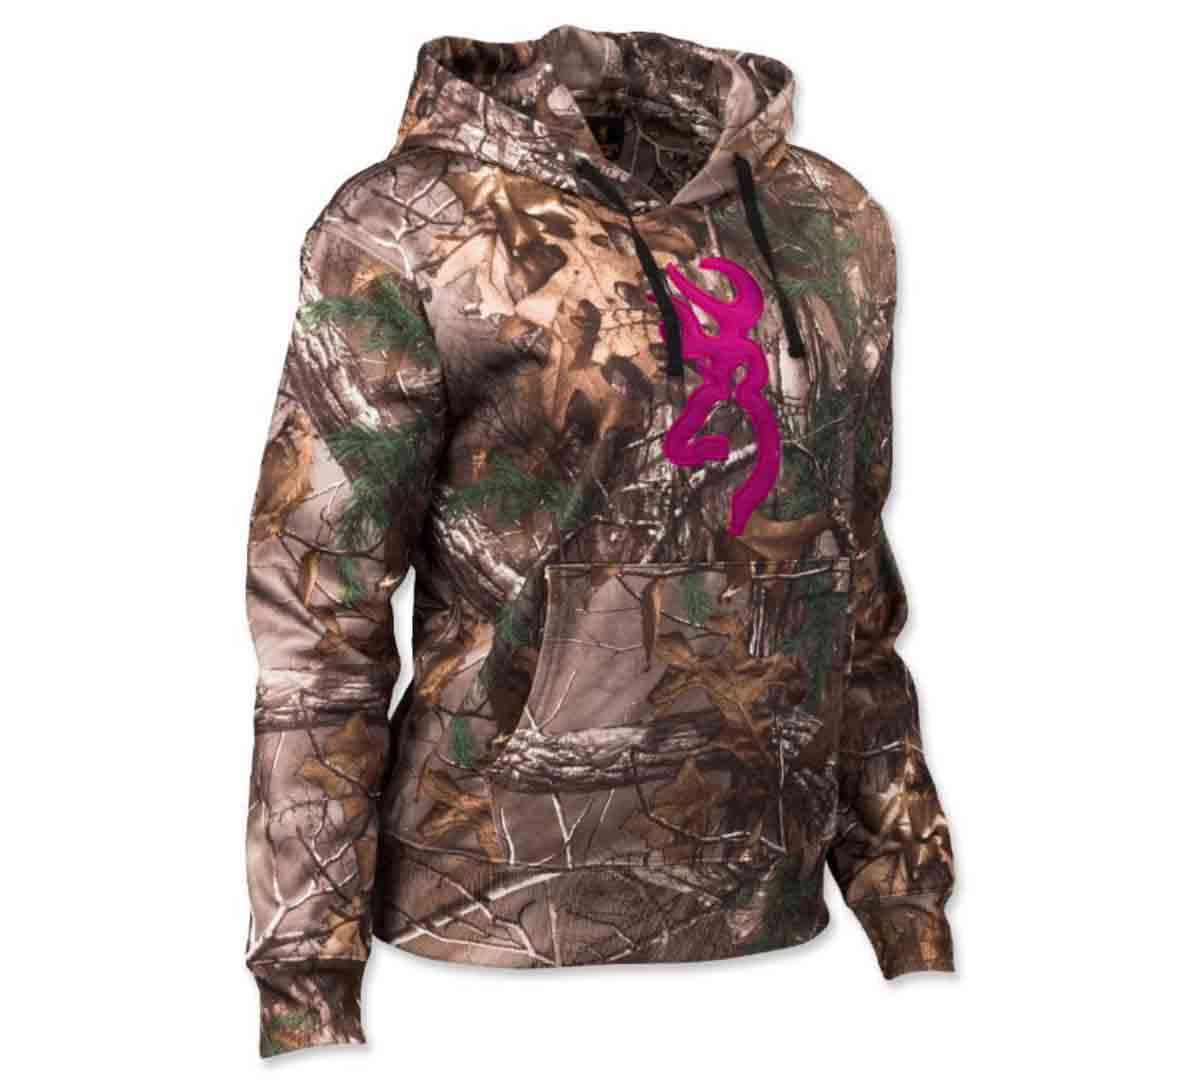 Browning Performance Hoodie For Her, Realtree AP Xtra_1.jpg